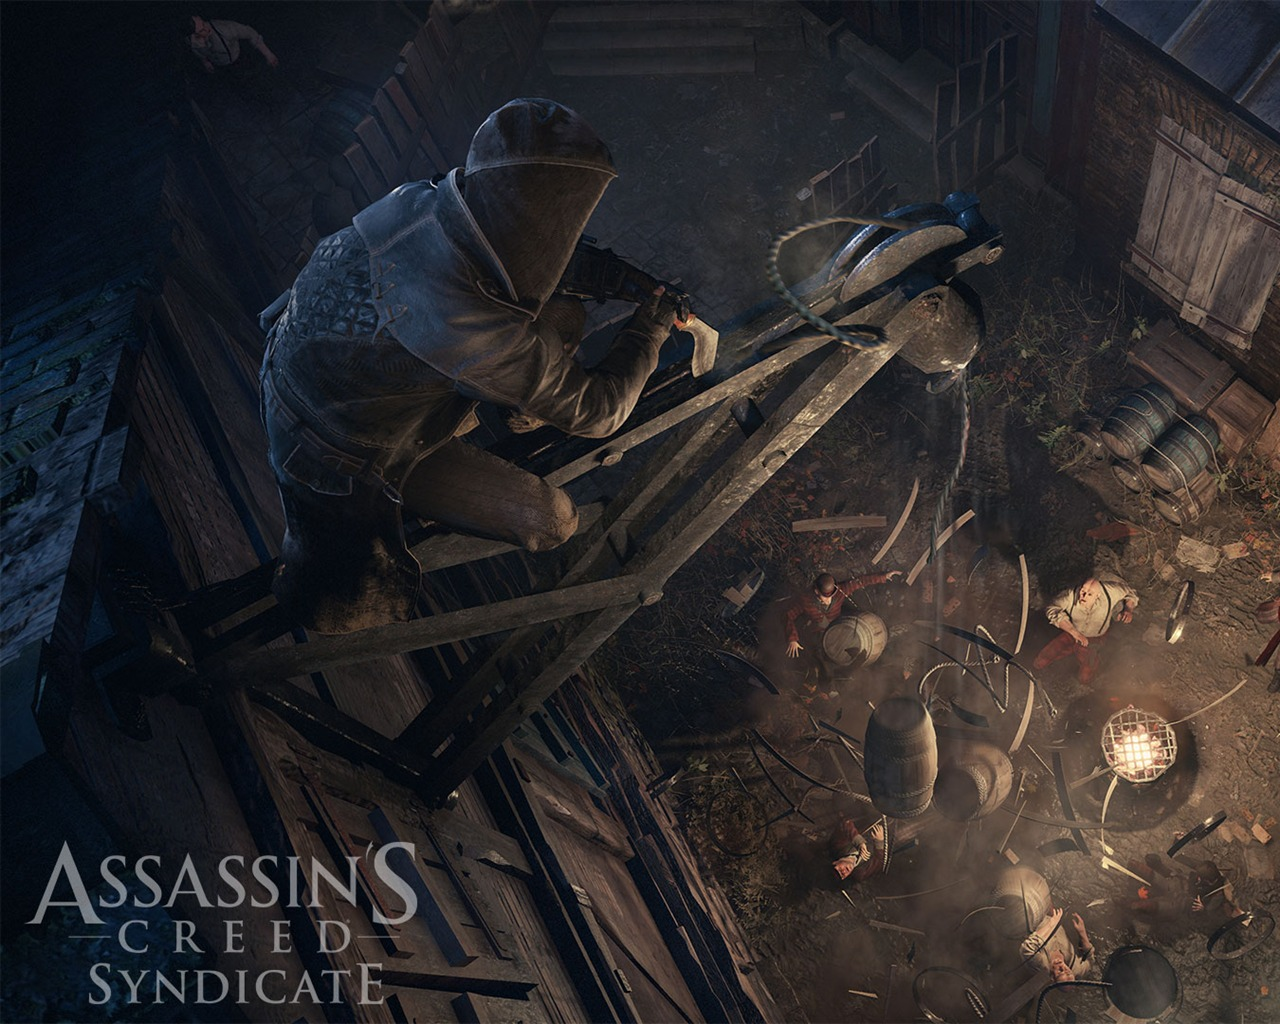 Assassins Creed Syndicate 2015 Hd Game Wallpaper 05 Preview